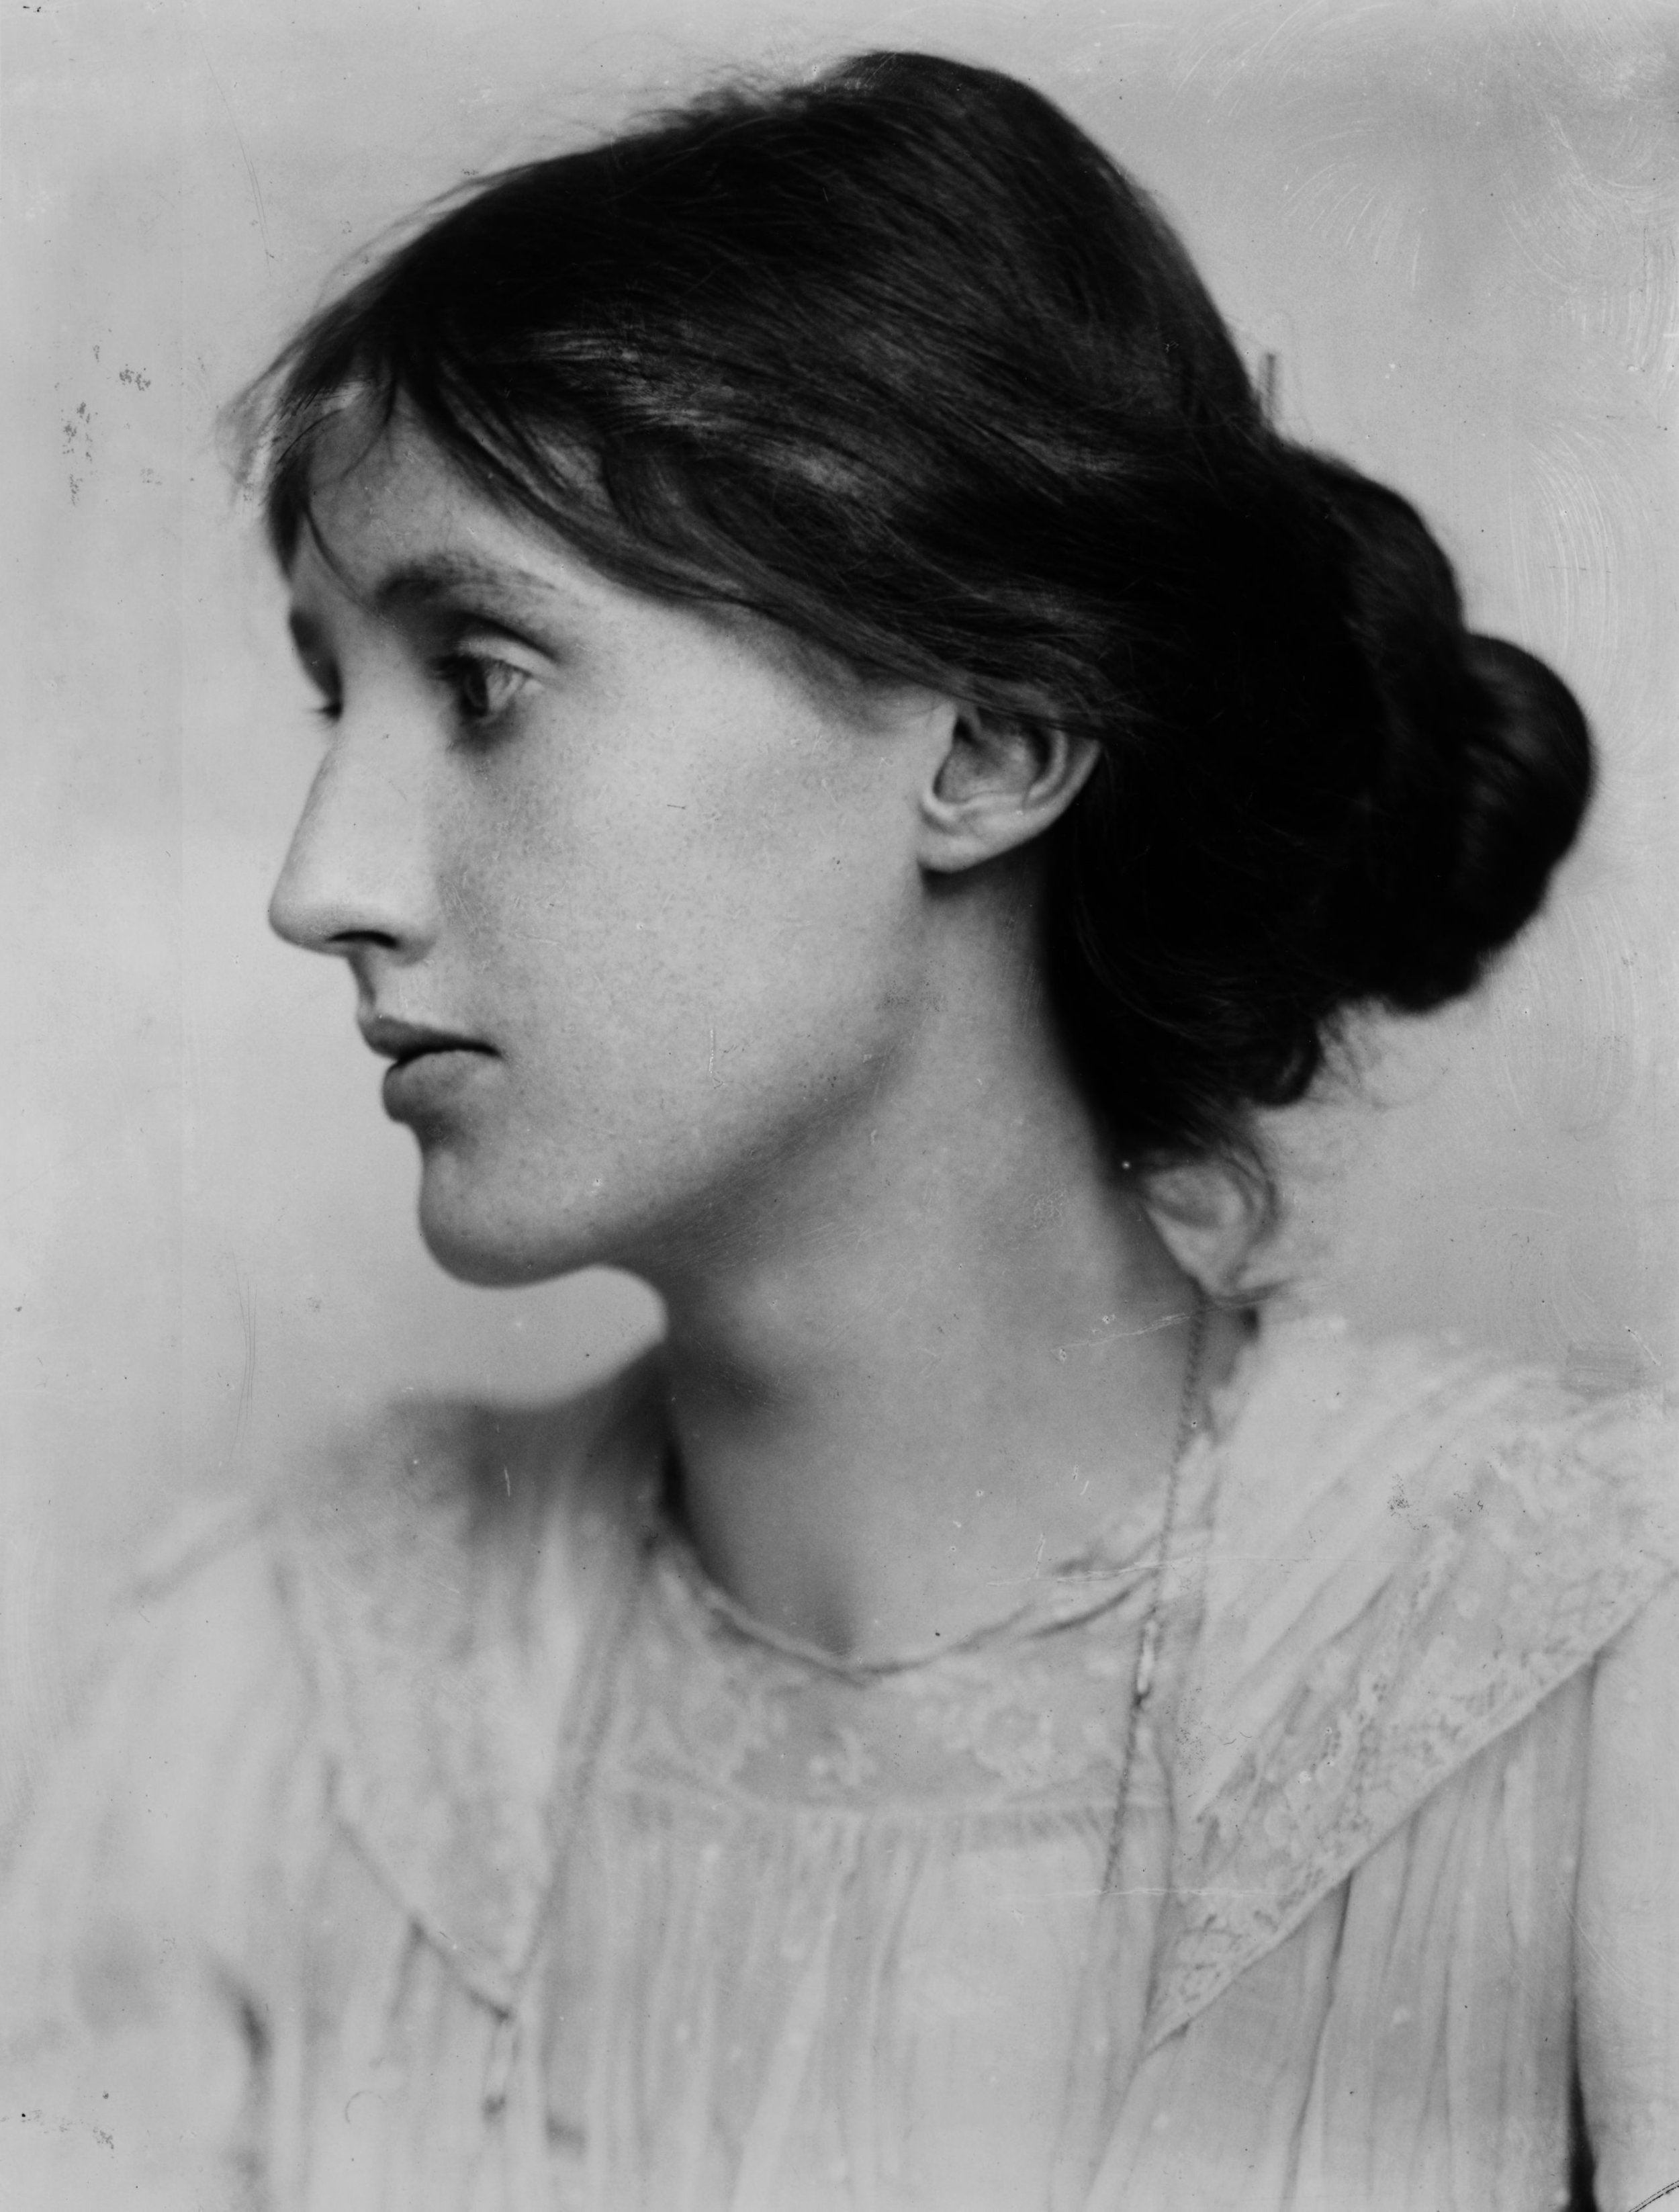 Virginia Woolf. Image by George C. Beresford/Getty Images